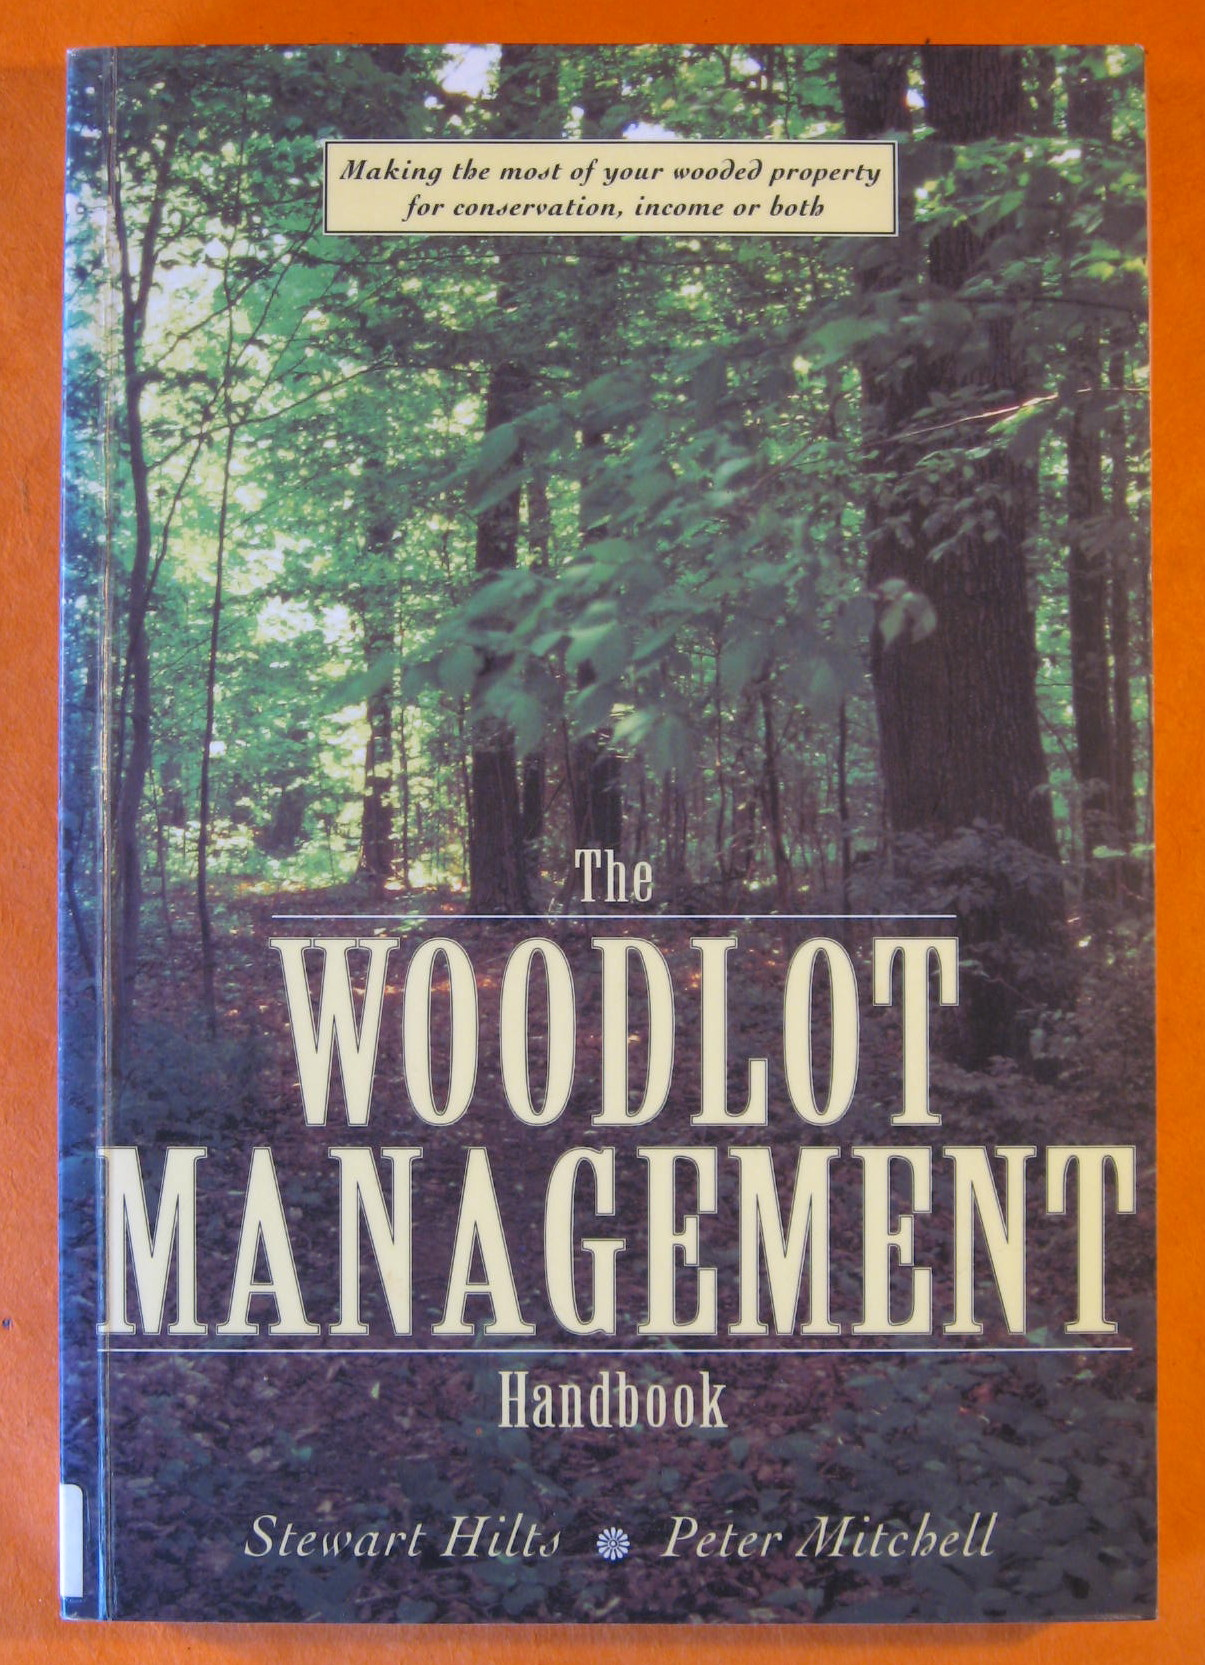 The Woodlot Management Handbook: Making the Most of Your Wooded Property for Conservation, Income or Both, Hilts, Stewart; Mitchell, Peter